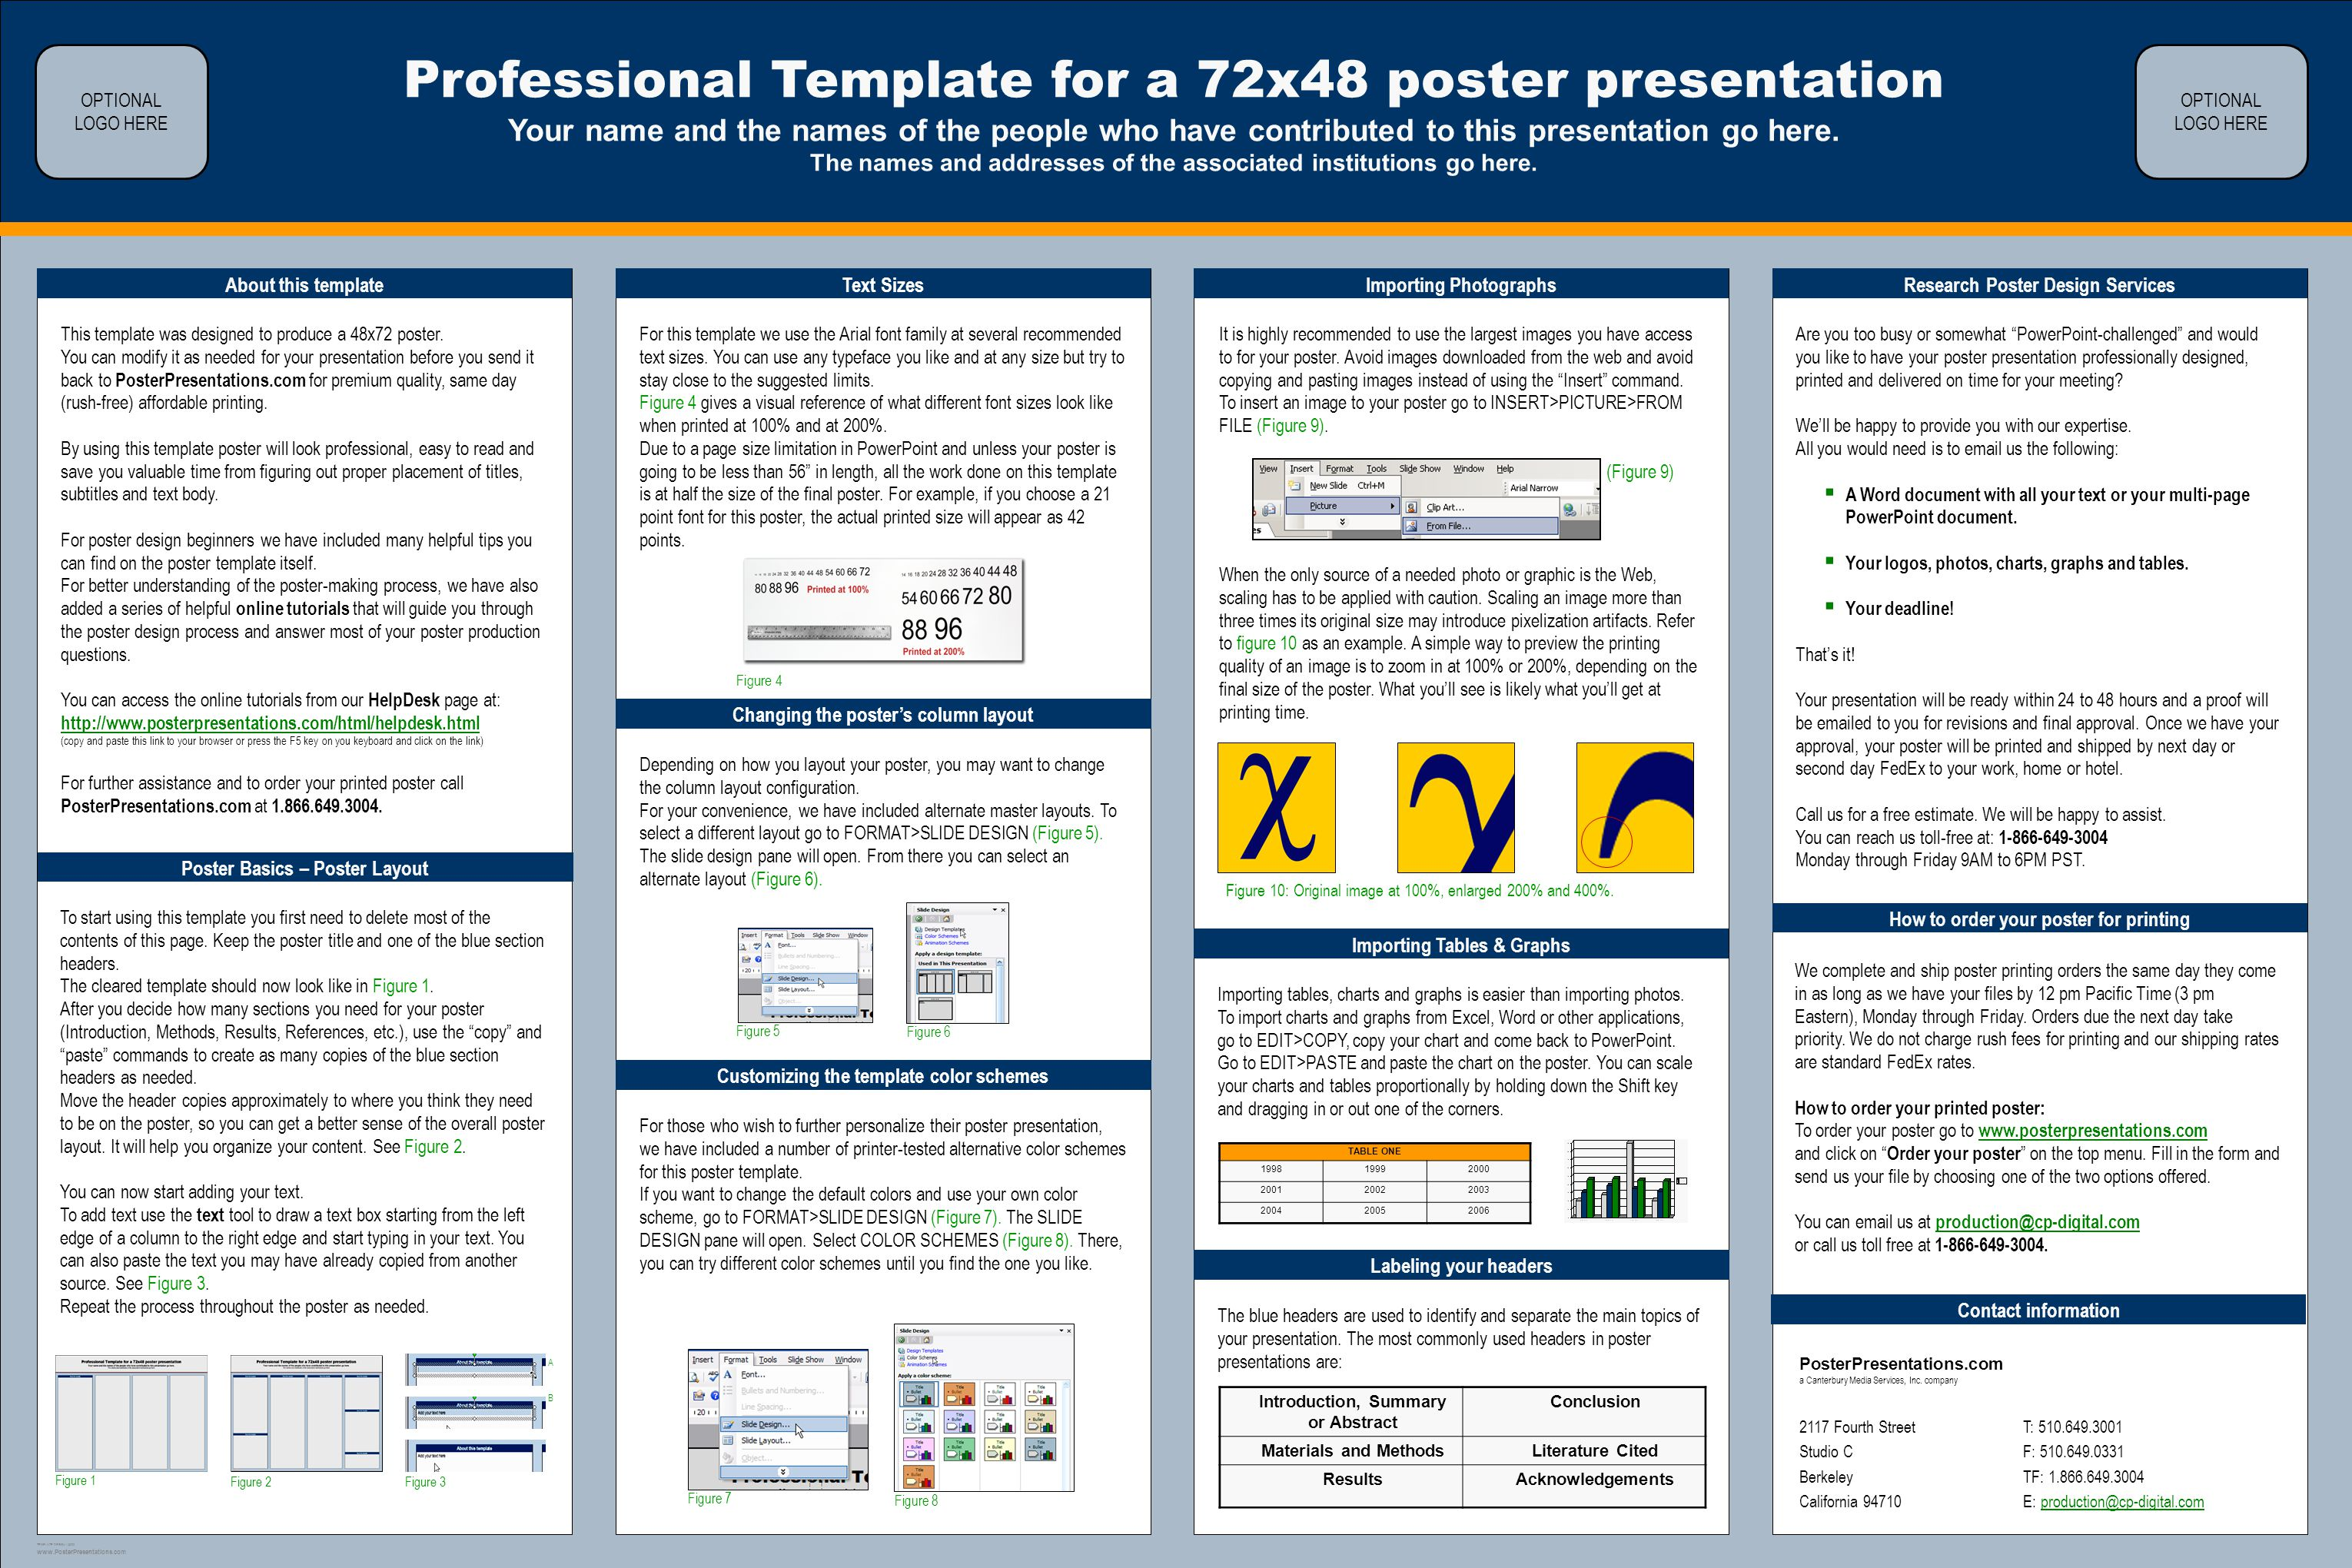 Professional Template for a 72x48 poster presentation